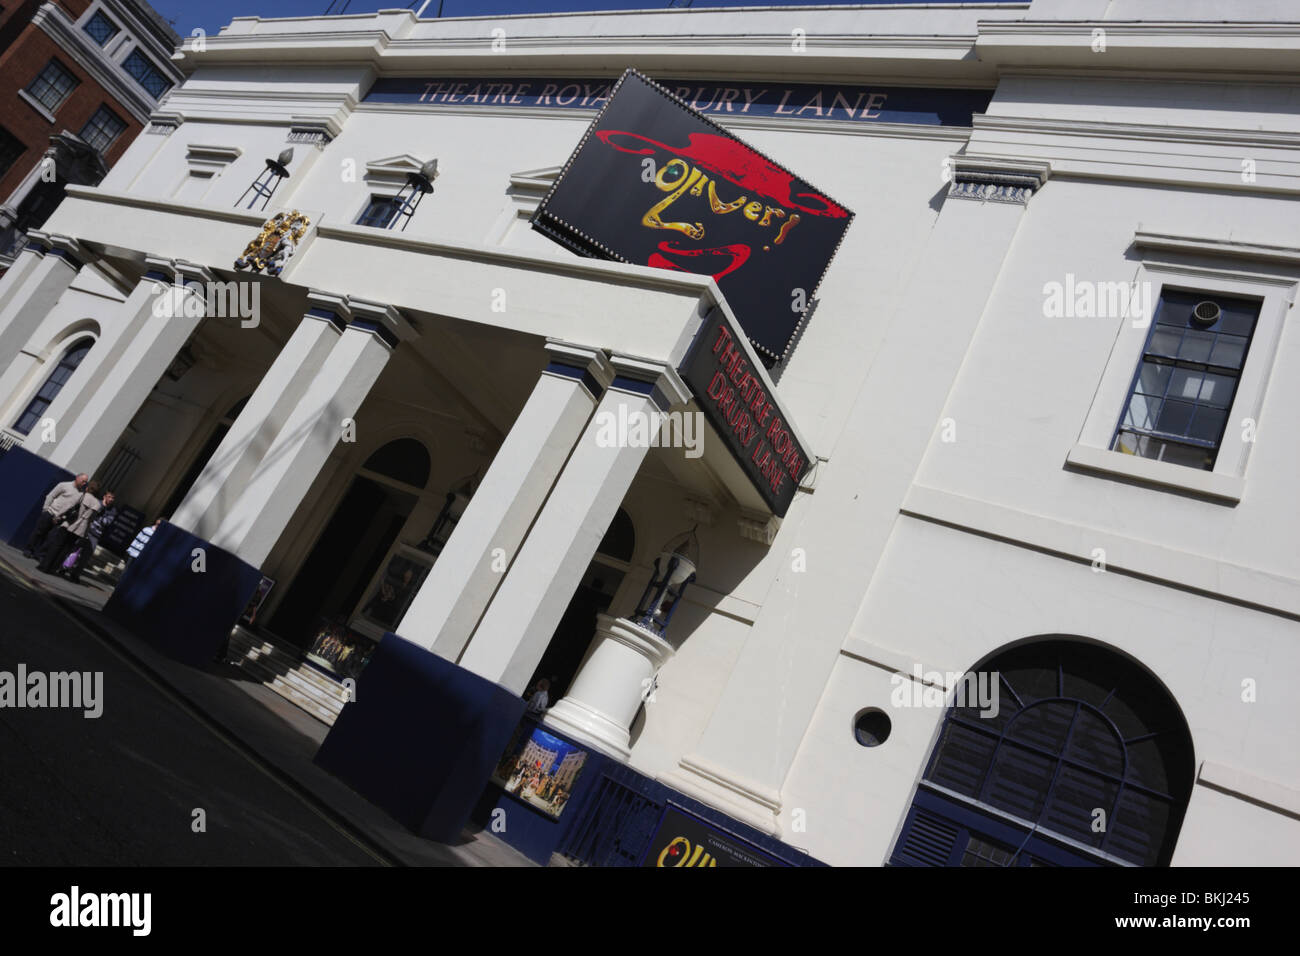 The current 19th century Theatre Royal Drury Lane,situated in Catherine Street in Covent Garden. - Stock Image